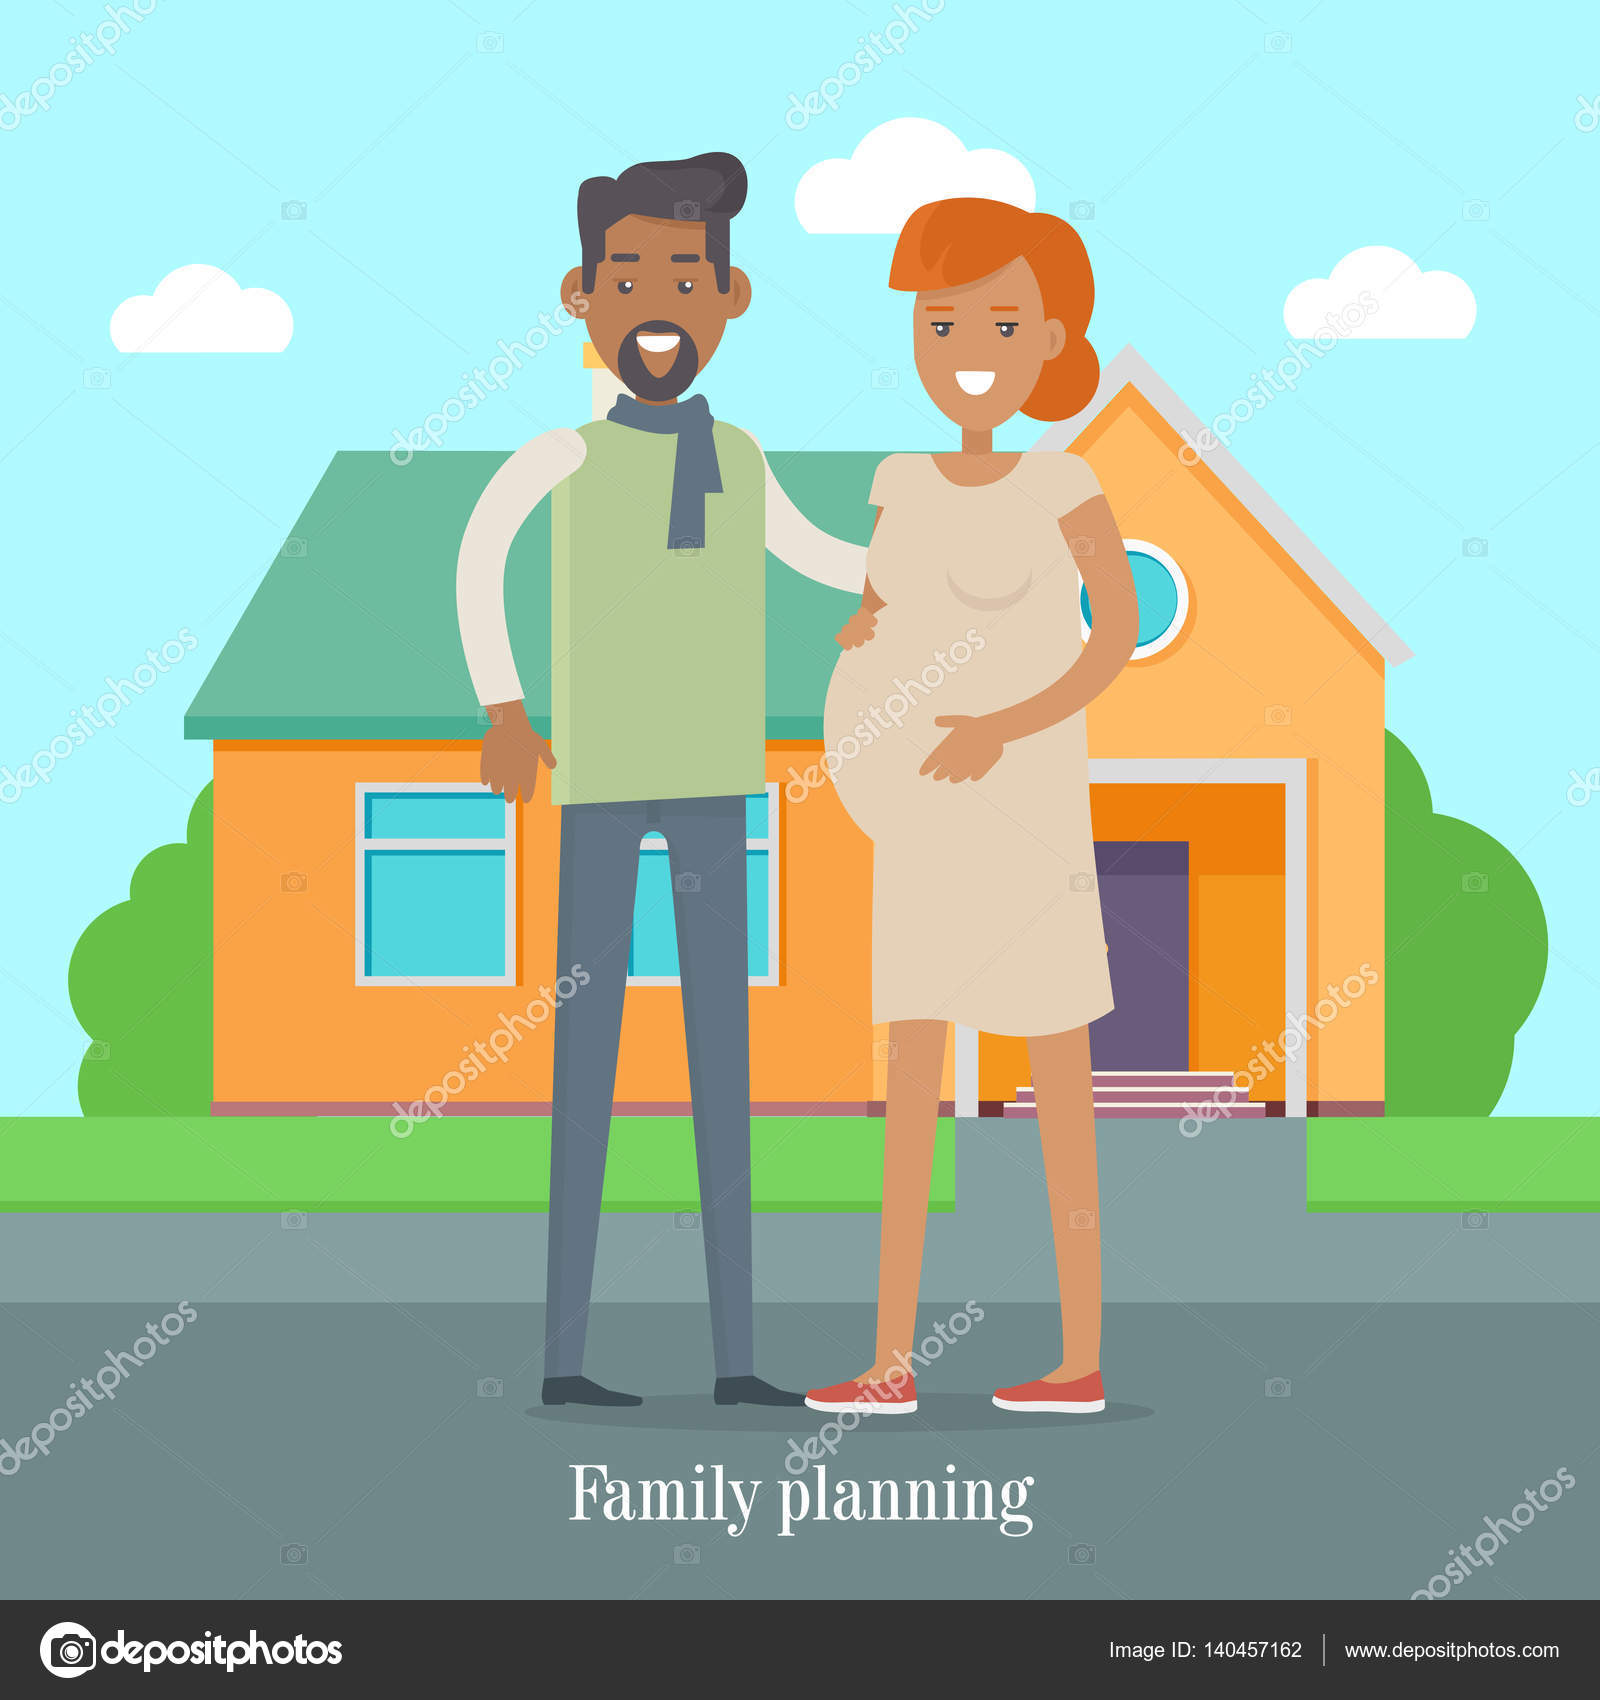 women and family planning Women have a wider choice of family planning methods as compared to men often it is the woman who is responsible for choosing and using the type of birth control method below are given various effective techniques and methods that can be implemented for family planning.